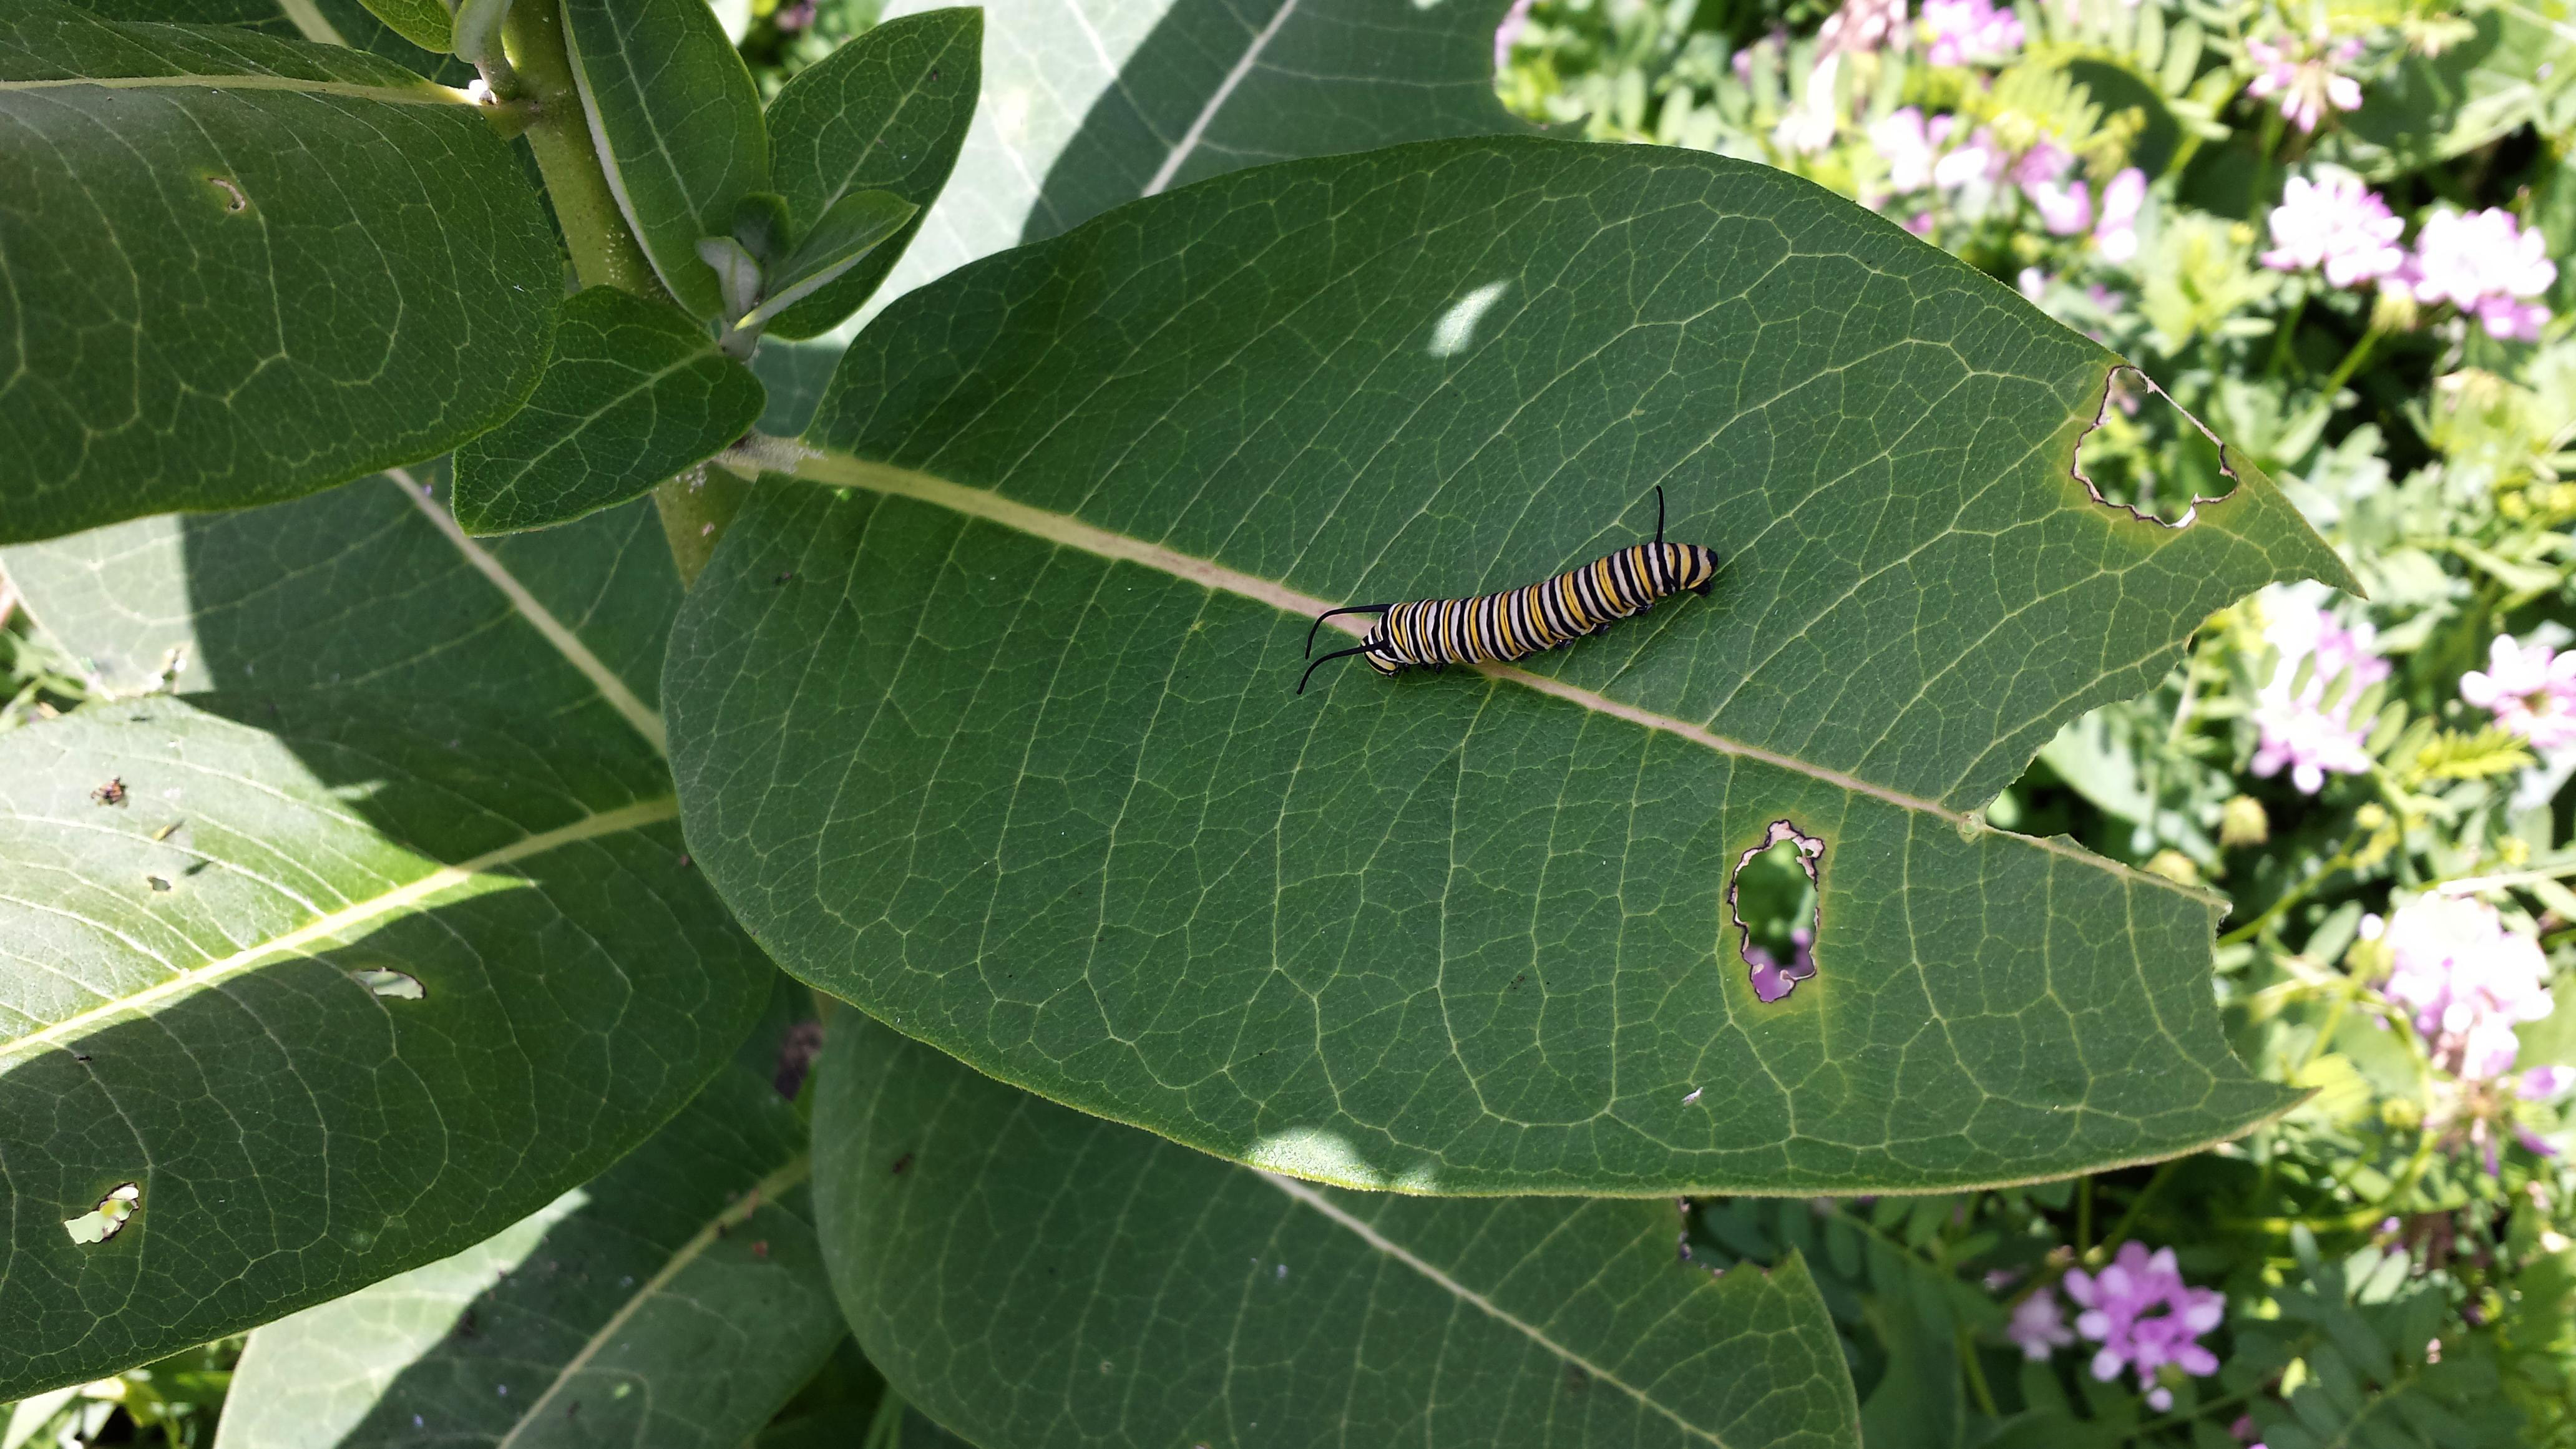 This adult monarch caterpillar, probably about one day from going into its chrysalis and turning into a butterfly, was spotted along Eola Road. It was roughly 2 inches long and as big around as a pencil. Photo: Greg Cisko, CCD